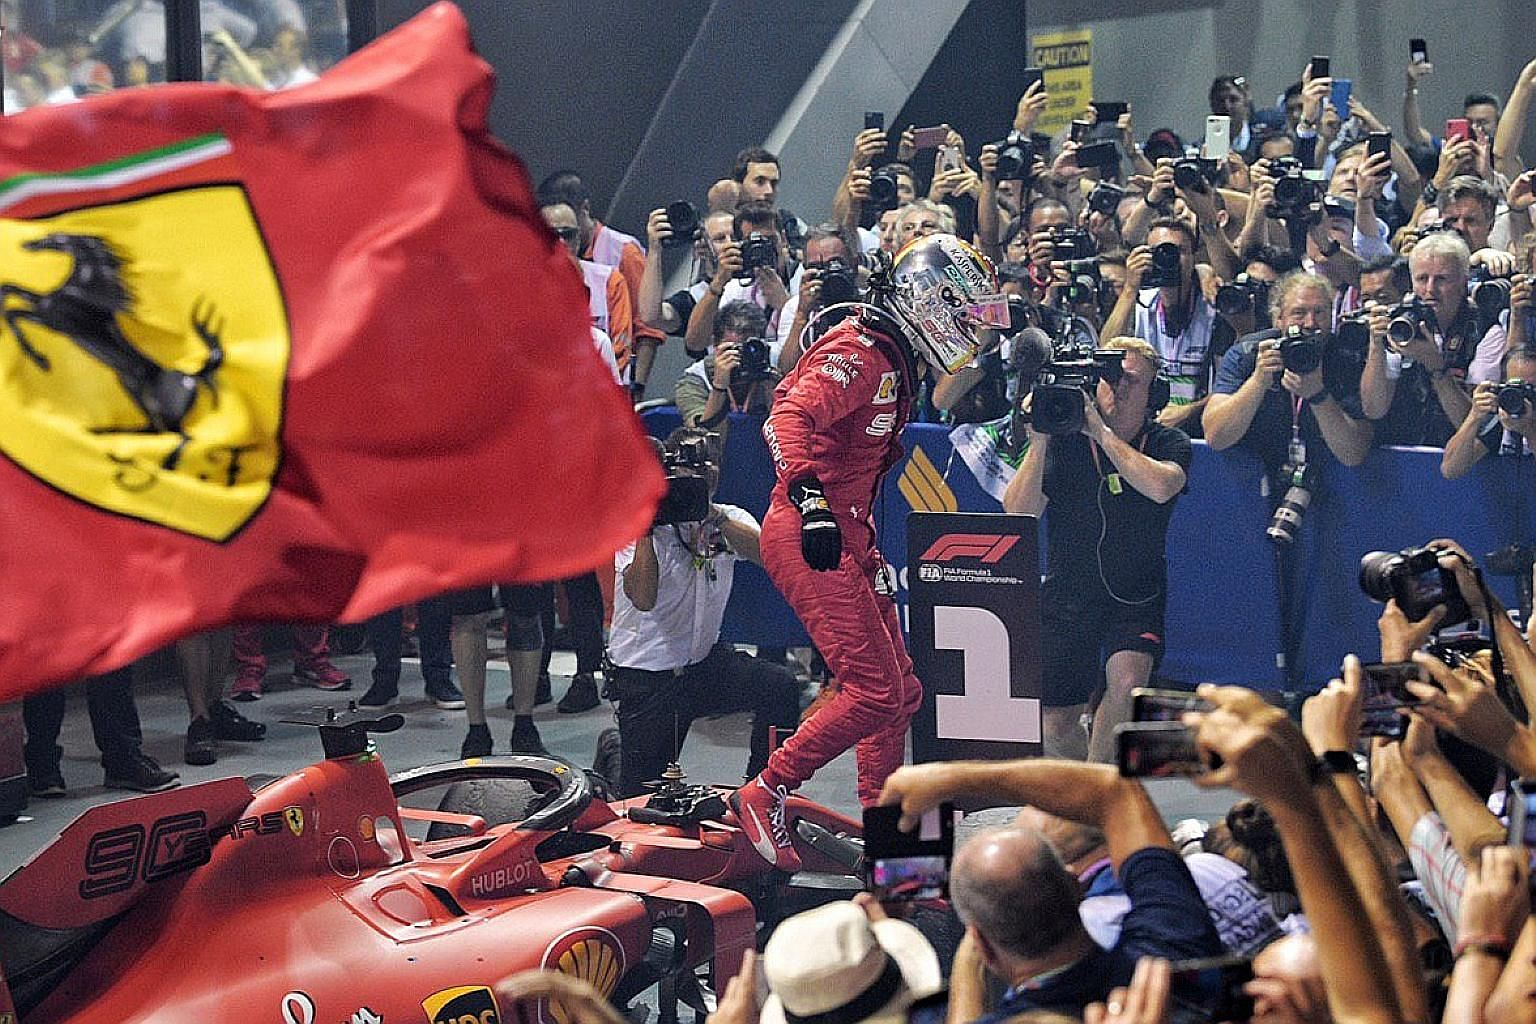 Sebastian Vettel's winless drought goes way back to the Belgian Grand Prix in August last year. The Ferrari driver's Singapore GP victory, his first since 2015, is his 53rd grand prix success.